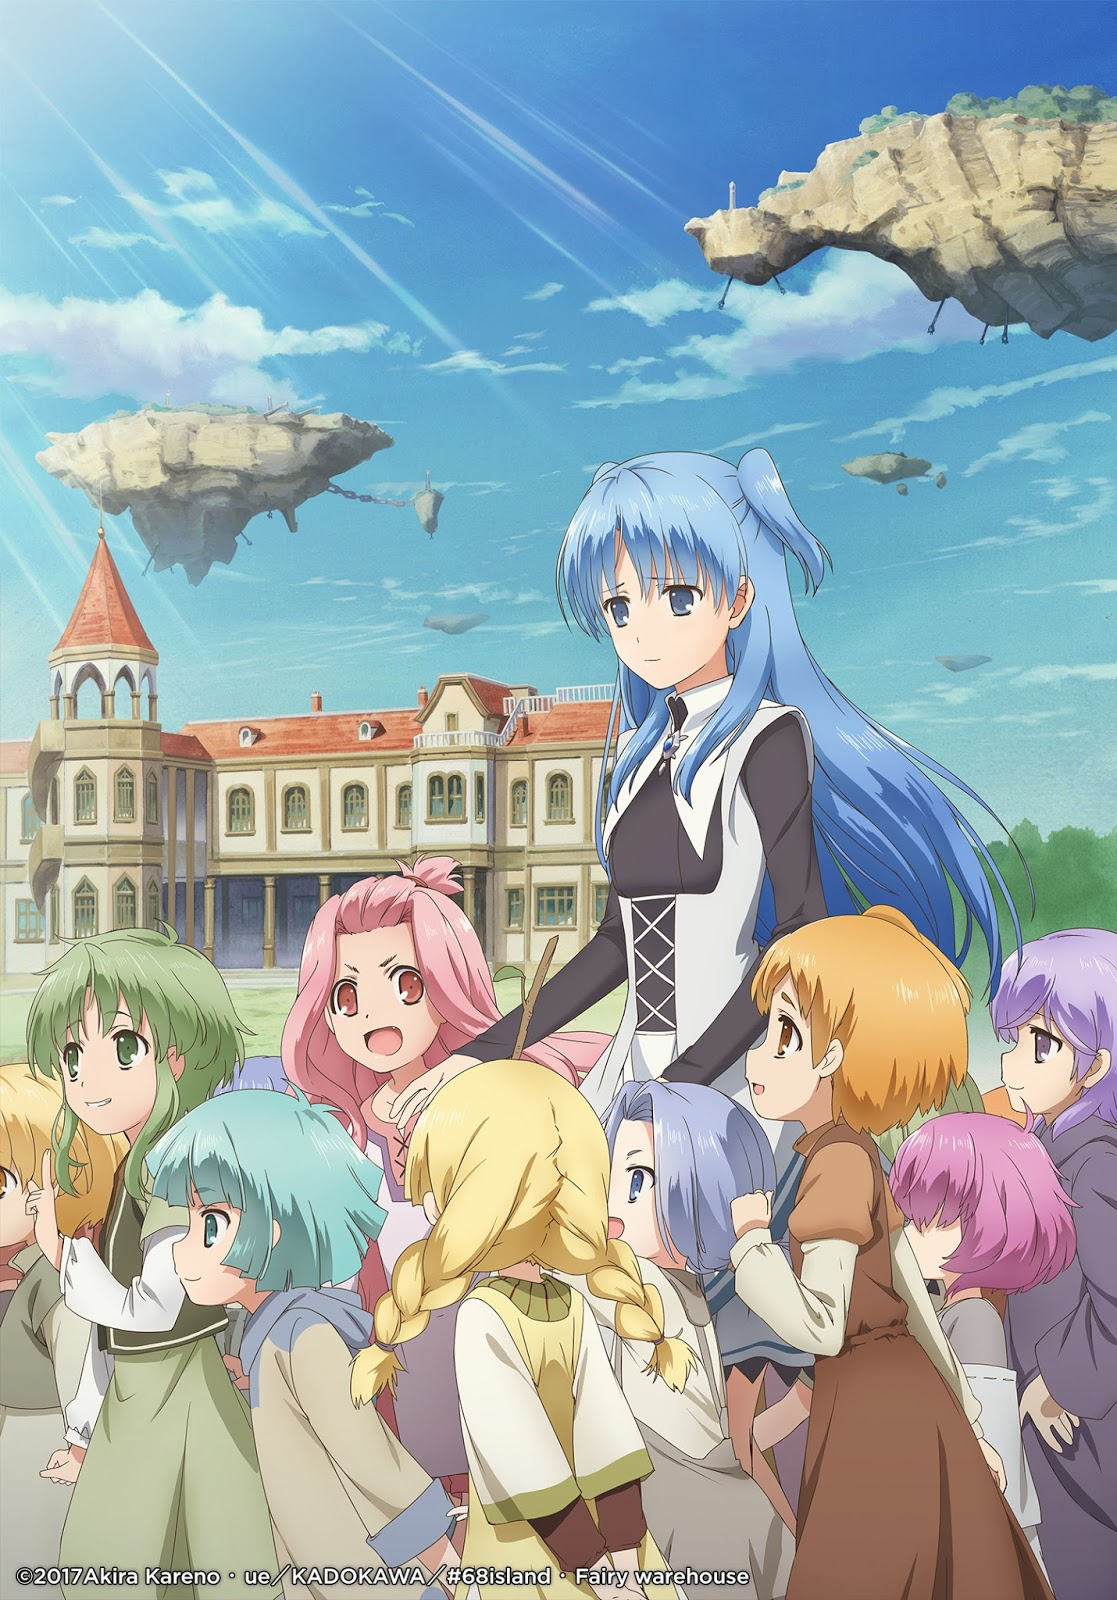 Will You Save Us And Armed Girls Machiavellism As Well The 10th Anniversary Of Otakufest 2018 Where Animax Be Taking Part Official